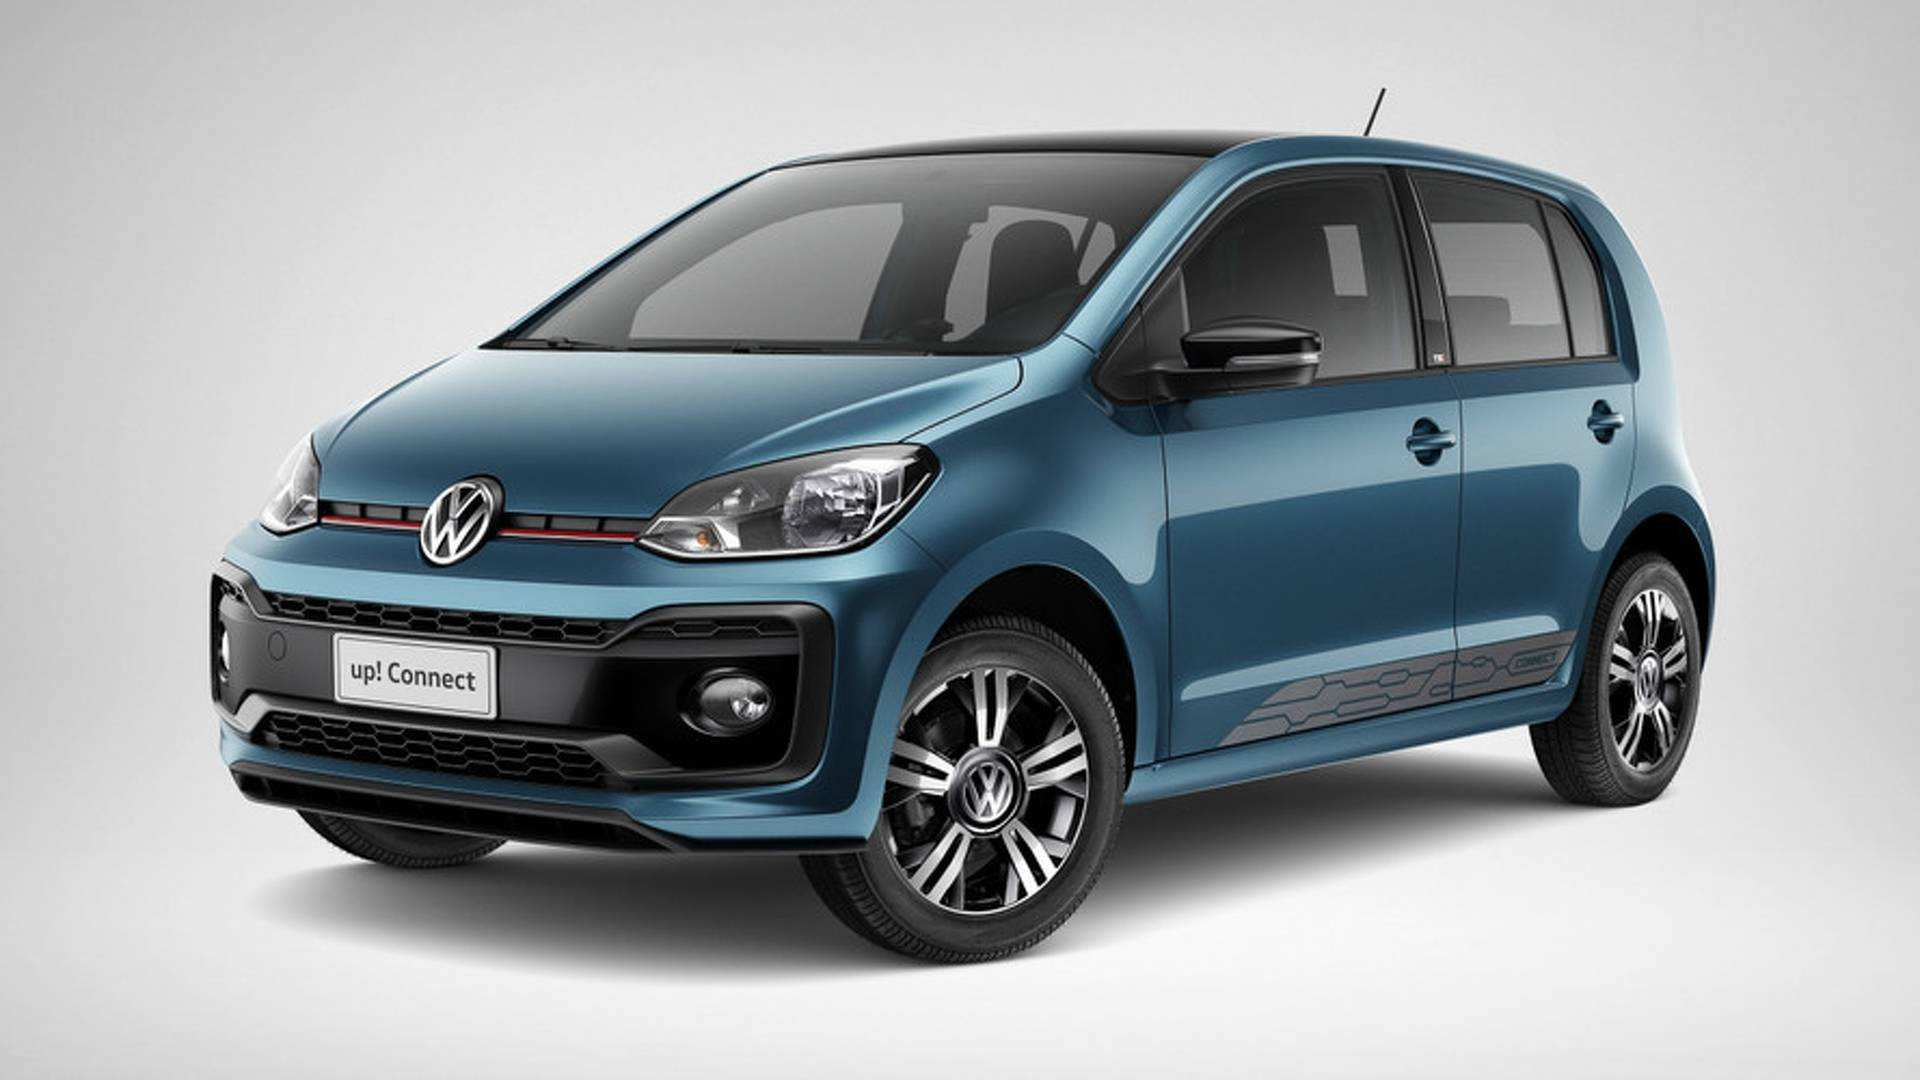 83 Great Linha Volkswagen 2019 Price and Review by Linha Volkswagen 2019